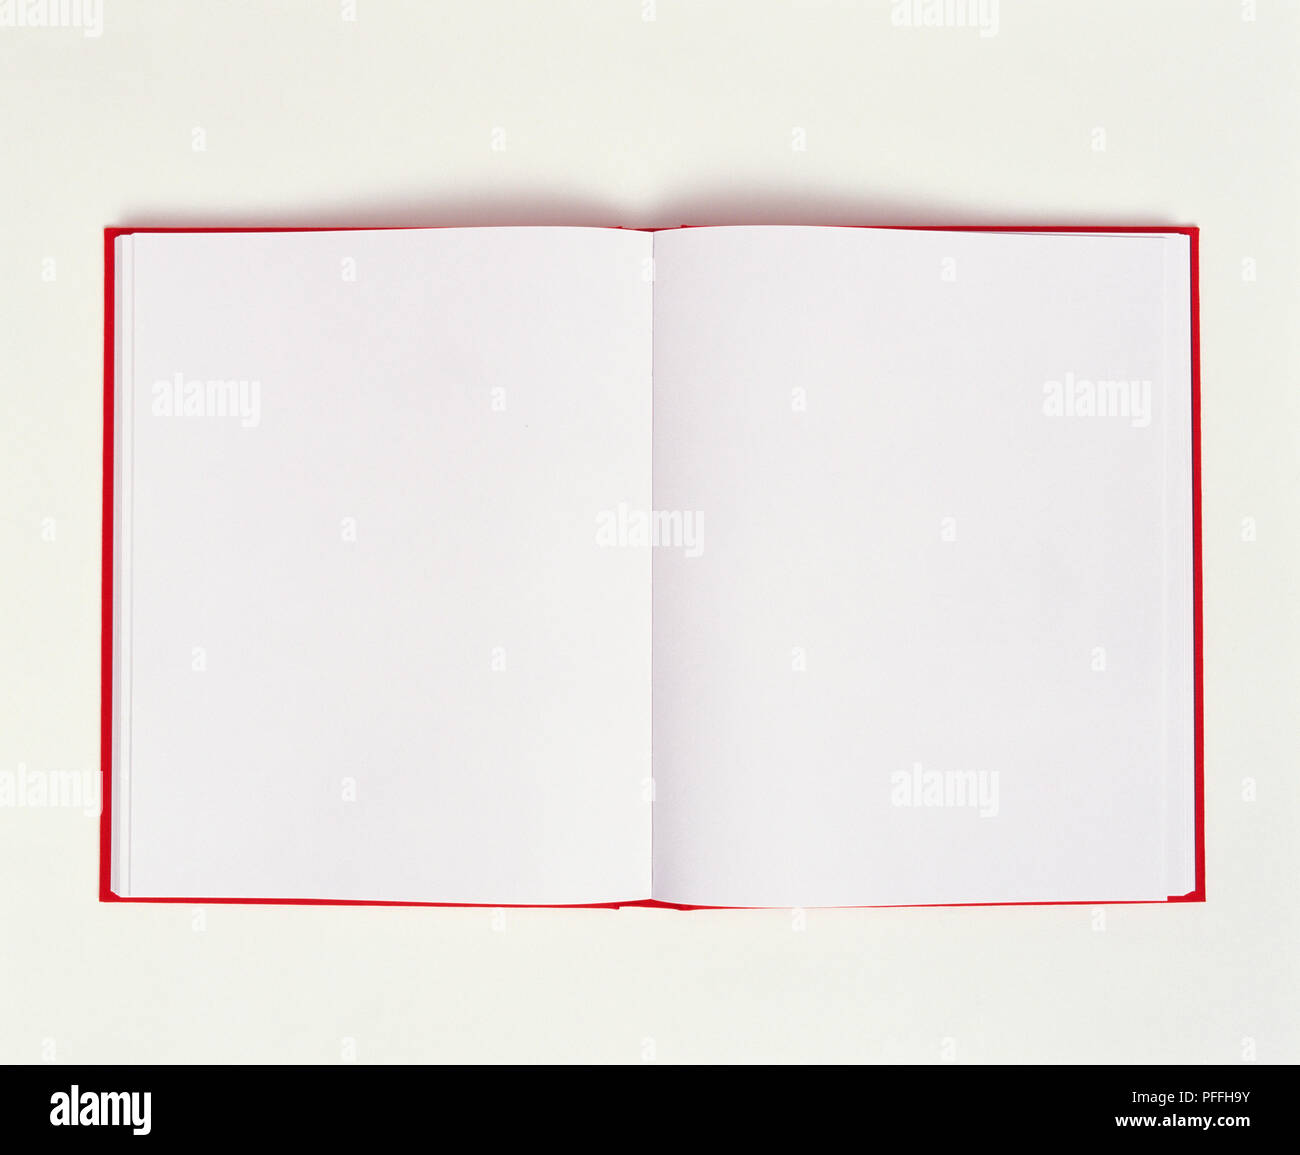 Open notepad with blank pages - Stock Image